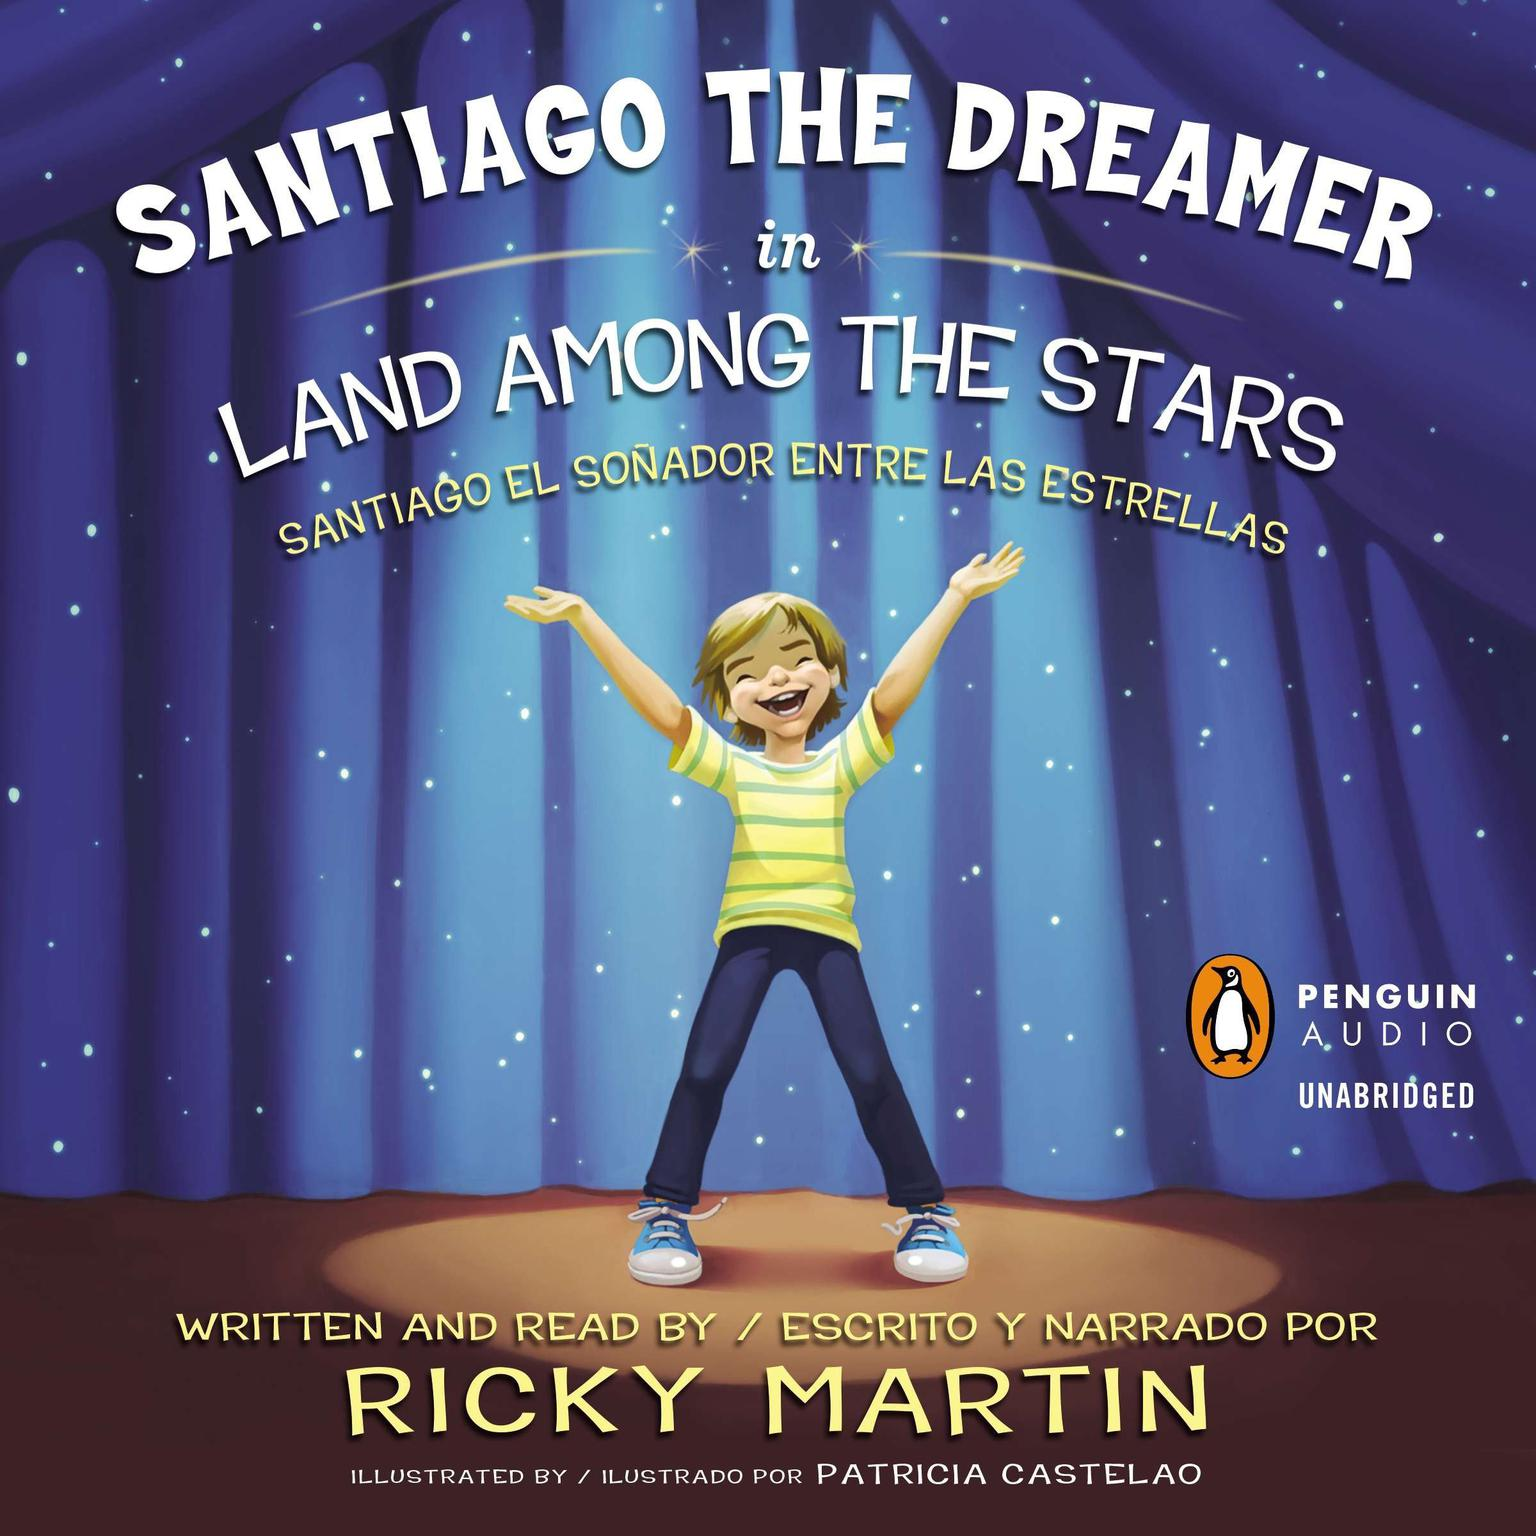 Printable Santiago the Dreamer in Land Among the Stars: Santiago el sonadorentre las estrellas Audiobook Cover Art